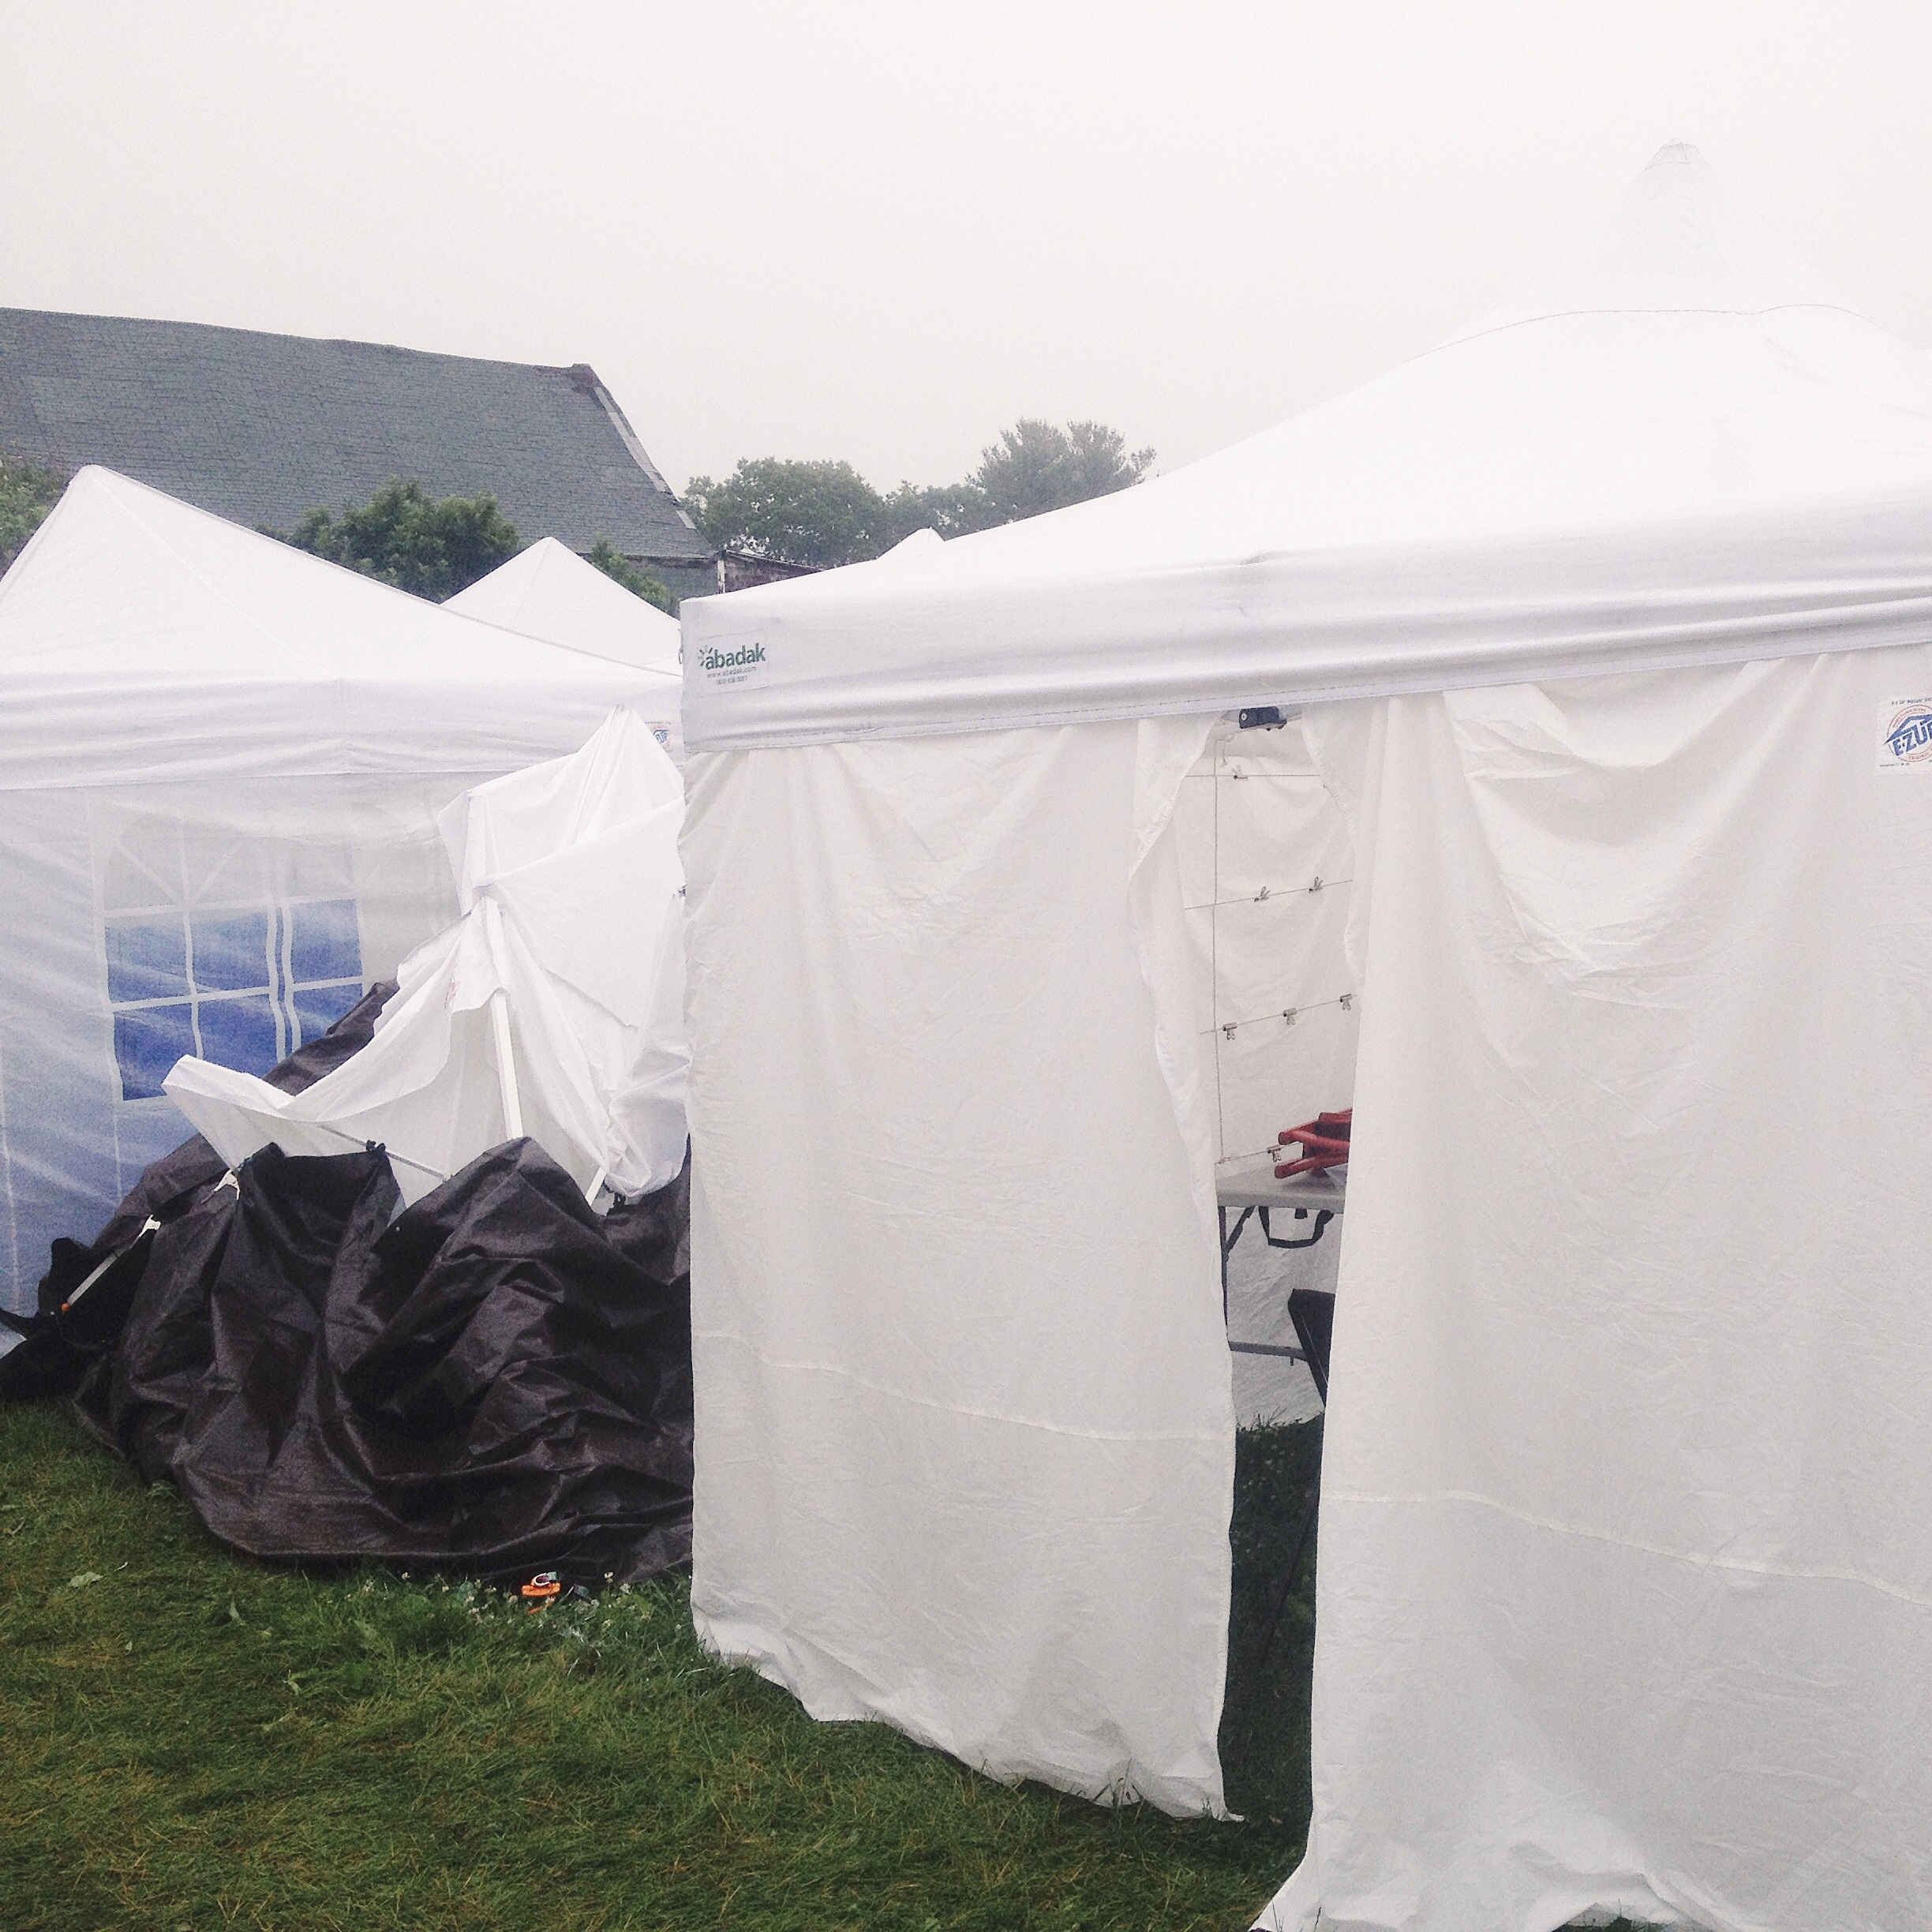 Heavy rains collapsed our neighbors tent at Vintage Bazaar